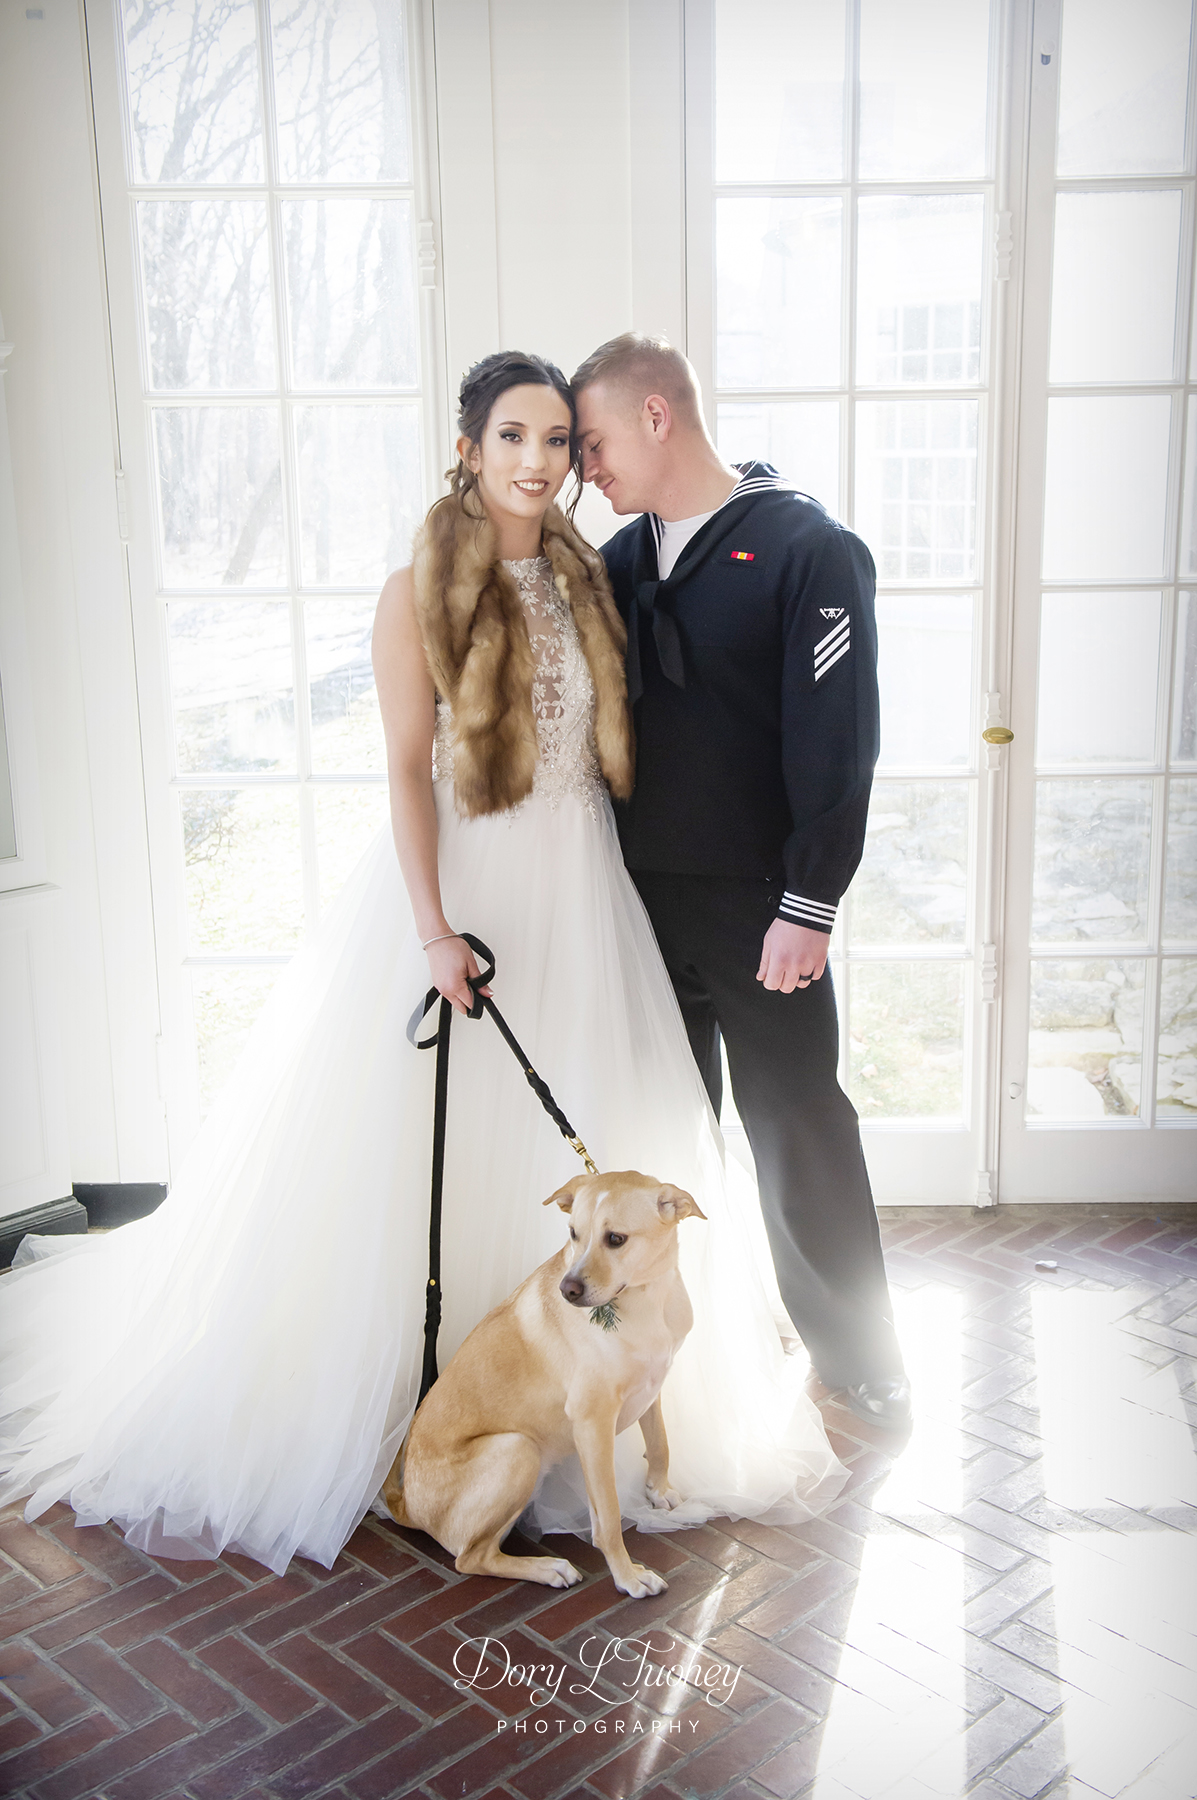 Adler_center_wedding)libertyville_dog_winter_new_years_bride_groom_dory_02.jpg